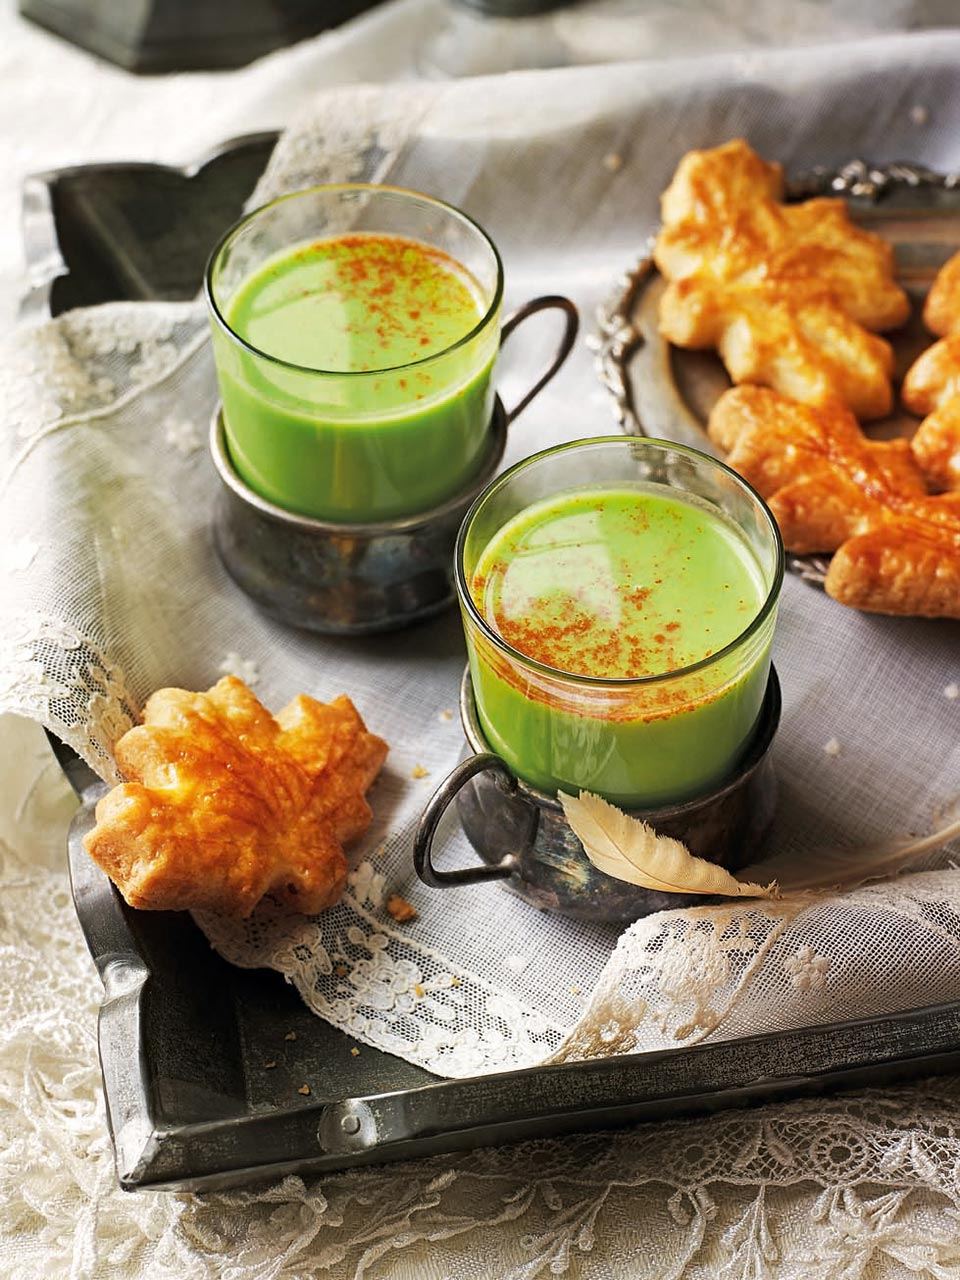 Spiced pea soup with cheddar sables